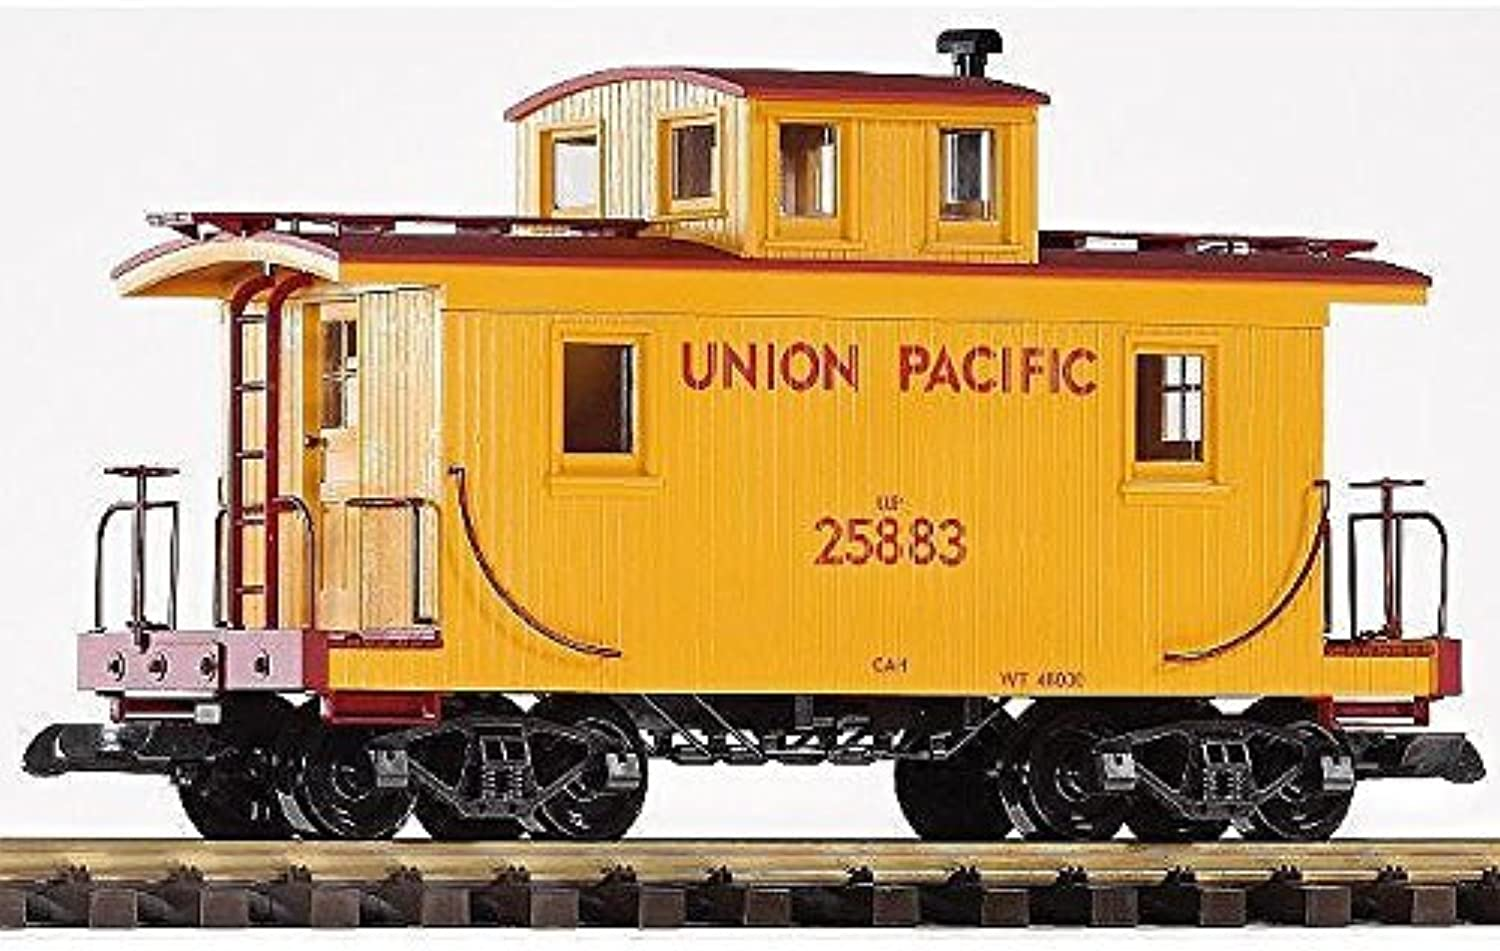 PIKO G SCALE MODEL TRAINS - UNION PACIFIC WOOD CABOOSE 25883 - 38830 by Piko